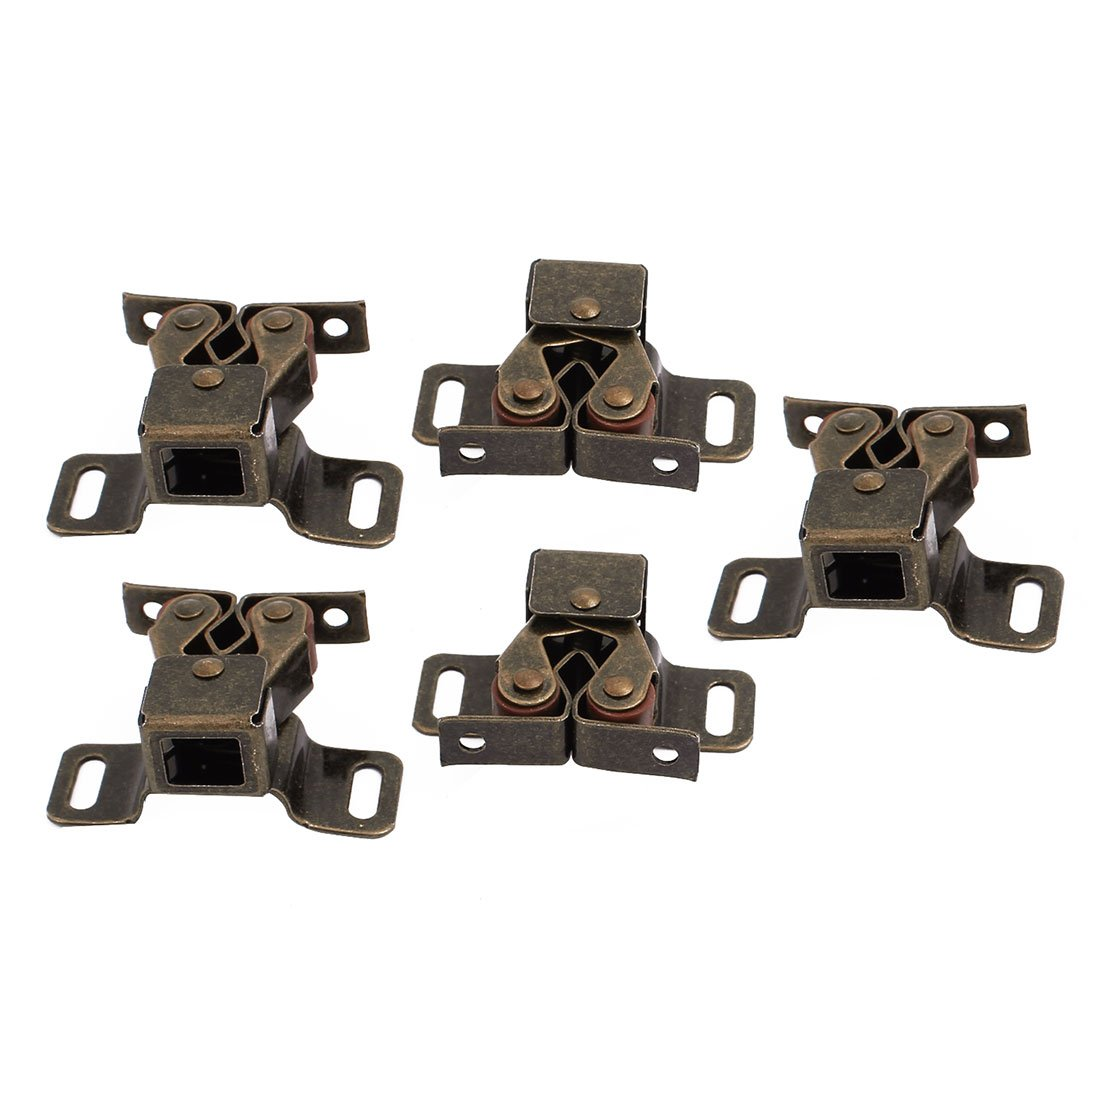 uxcell Cabinet Wardrobe Door Single Ball Roller Latch Catches Copper Tone 5pcs